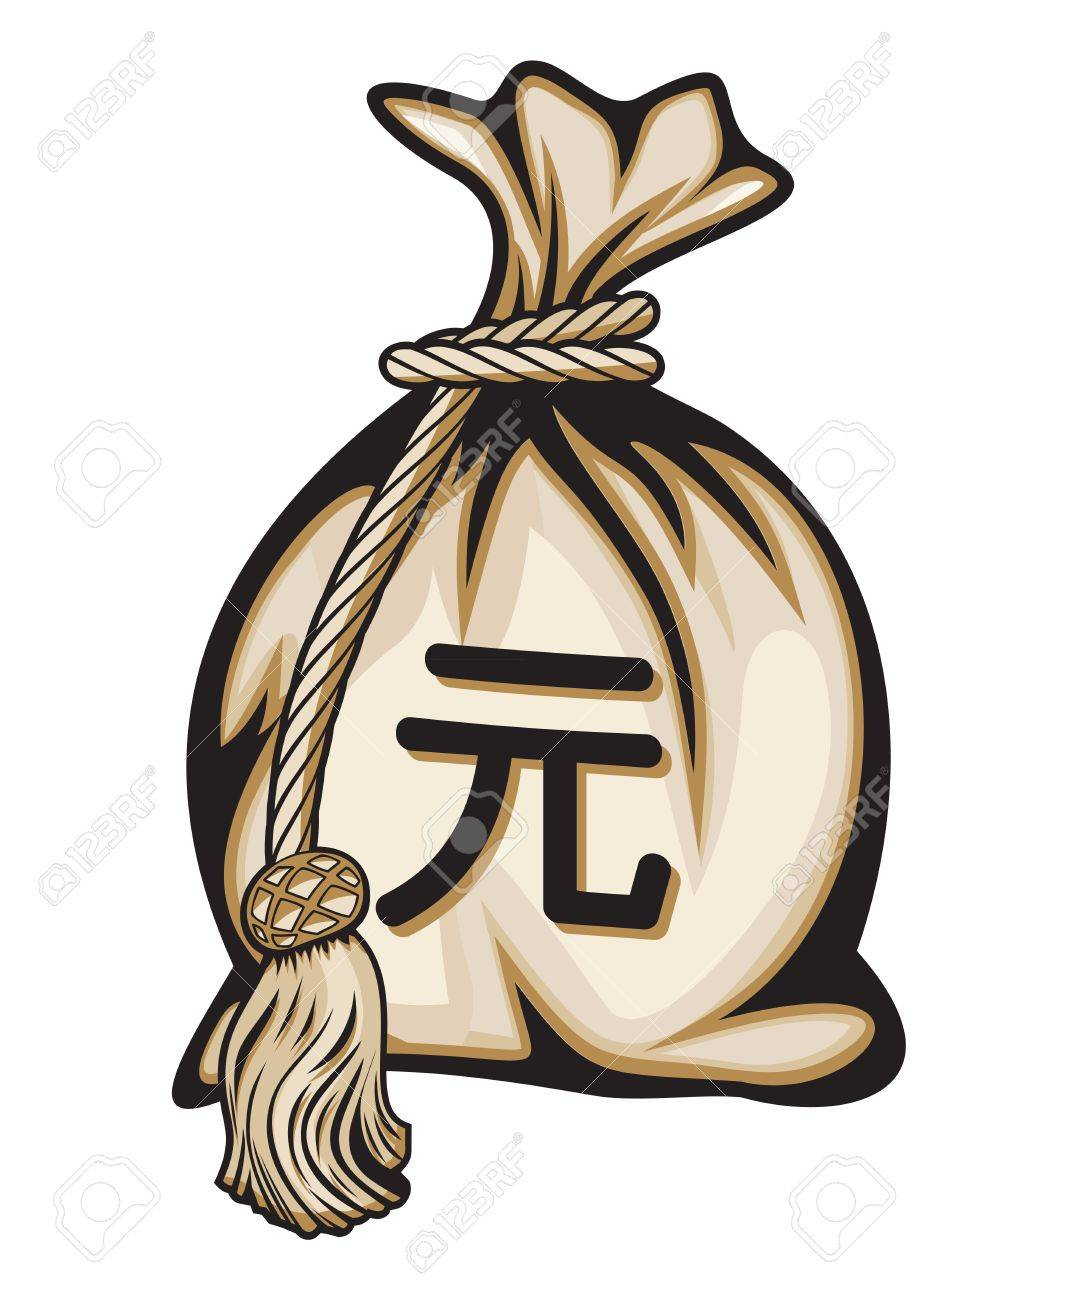 Money bag with yuan chinese currency symbol and coins royalty free money bag with yuan chinese currency symbol and coins stock vector 18245572 biocorpaavc